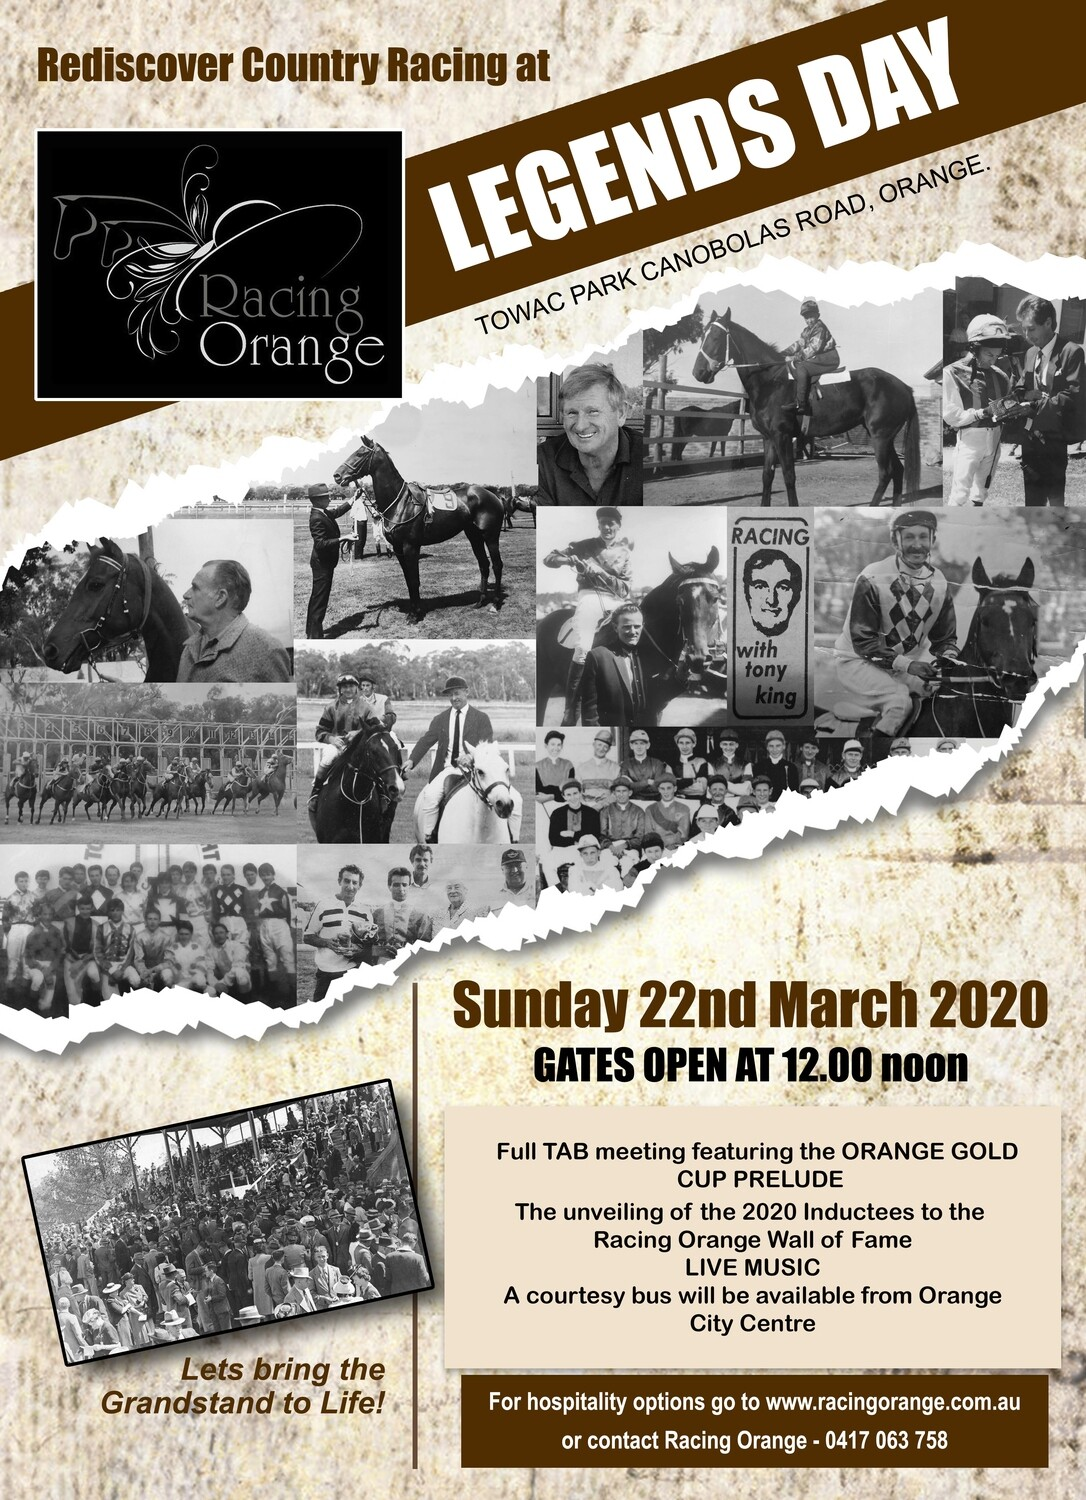 'Legends Day' Grandstand Lawn - Trackside Party 21st March 2021